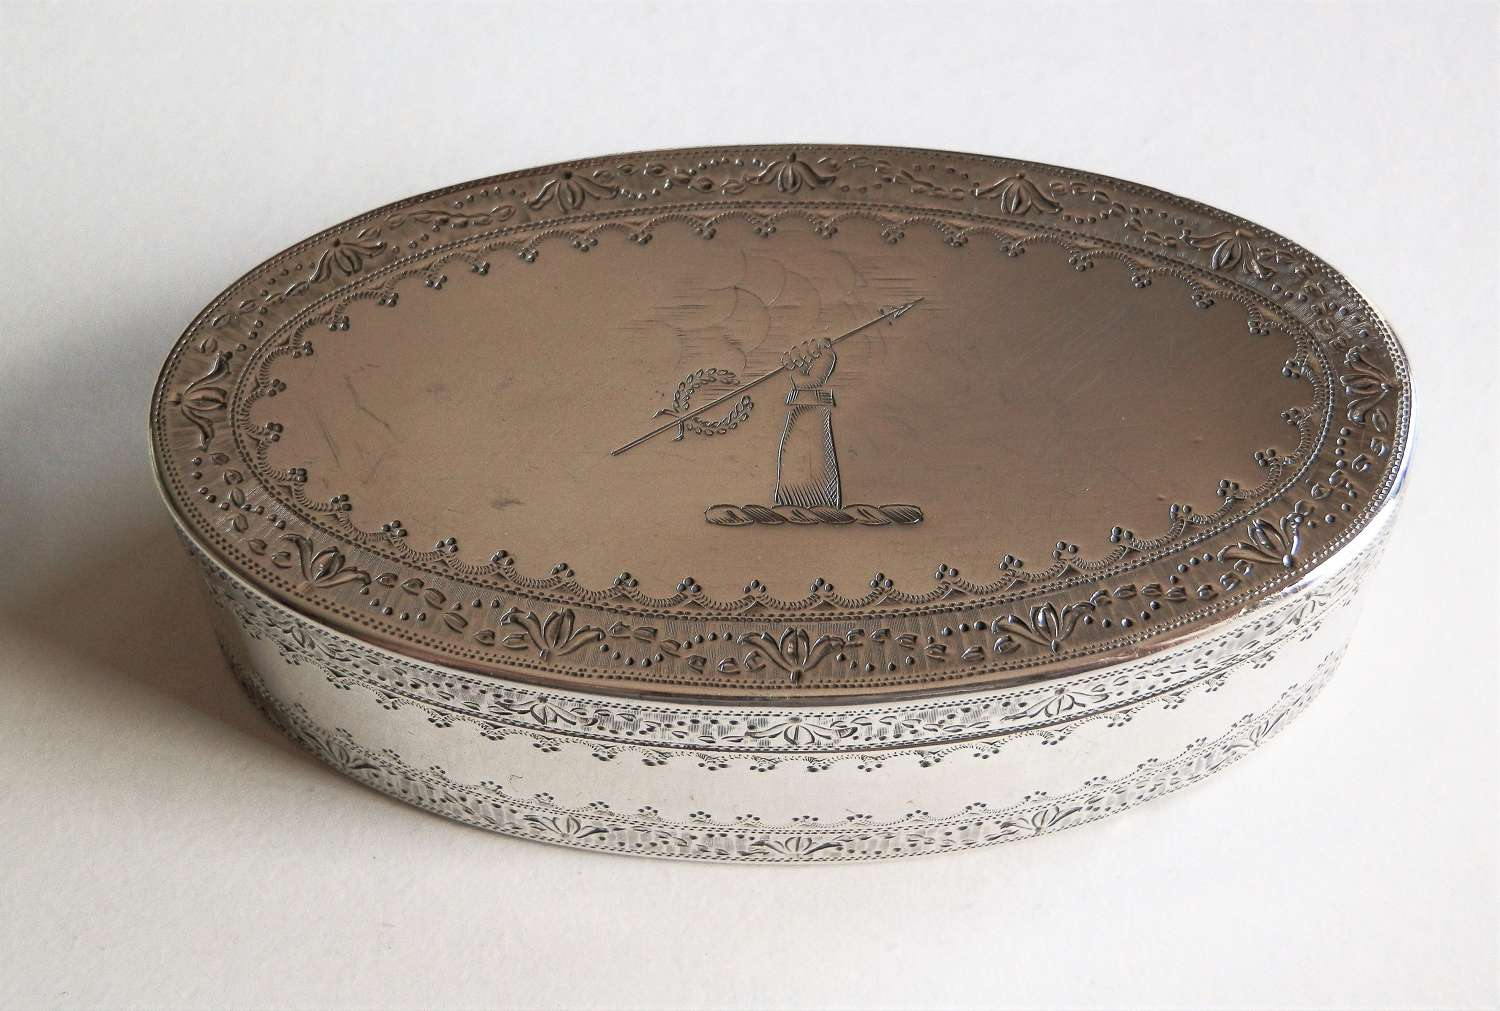 A George III oval silver snuff box, London 1786